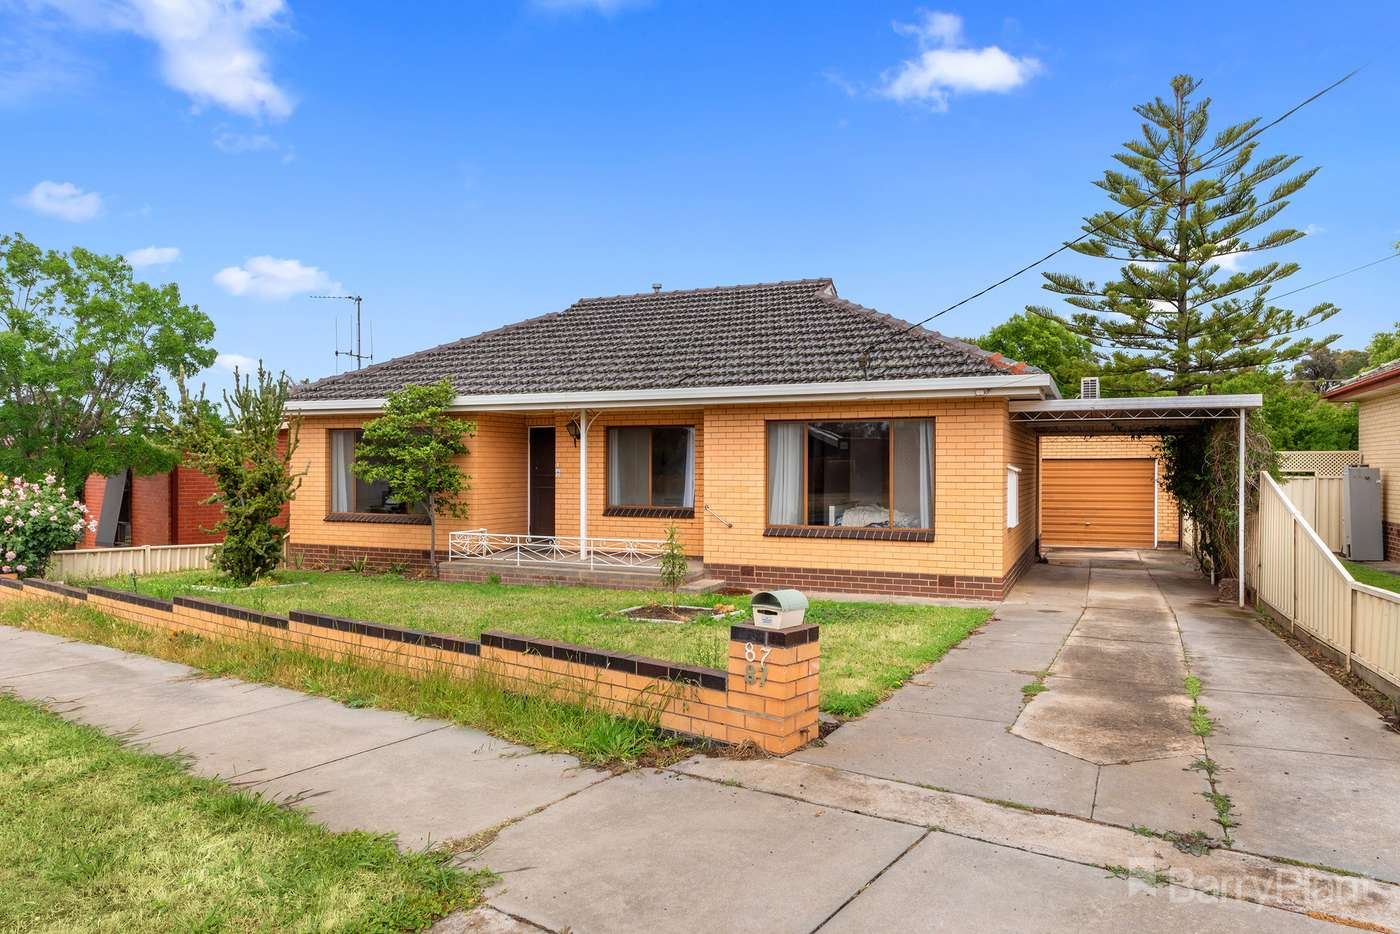 Main view of Homely house listing, 87 Prouses Road, North Bendigo VIC 3550